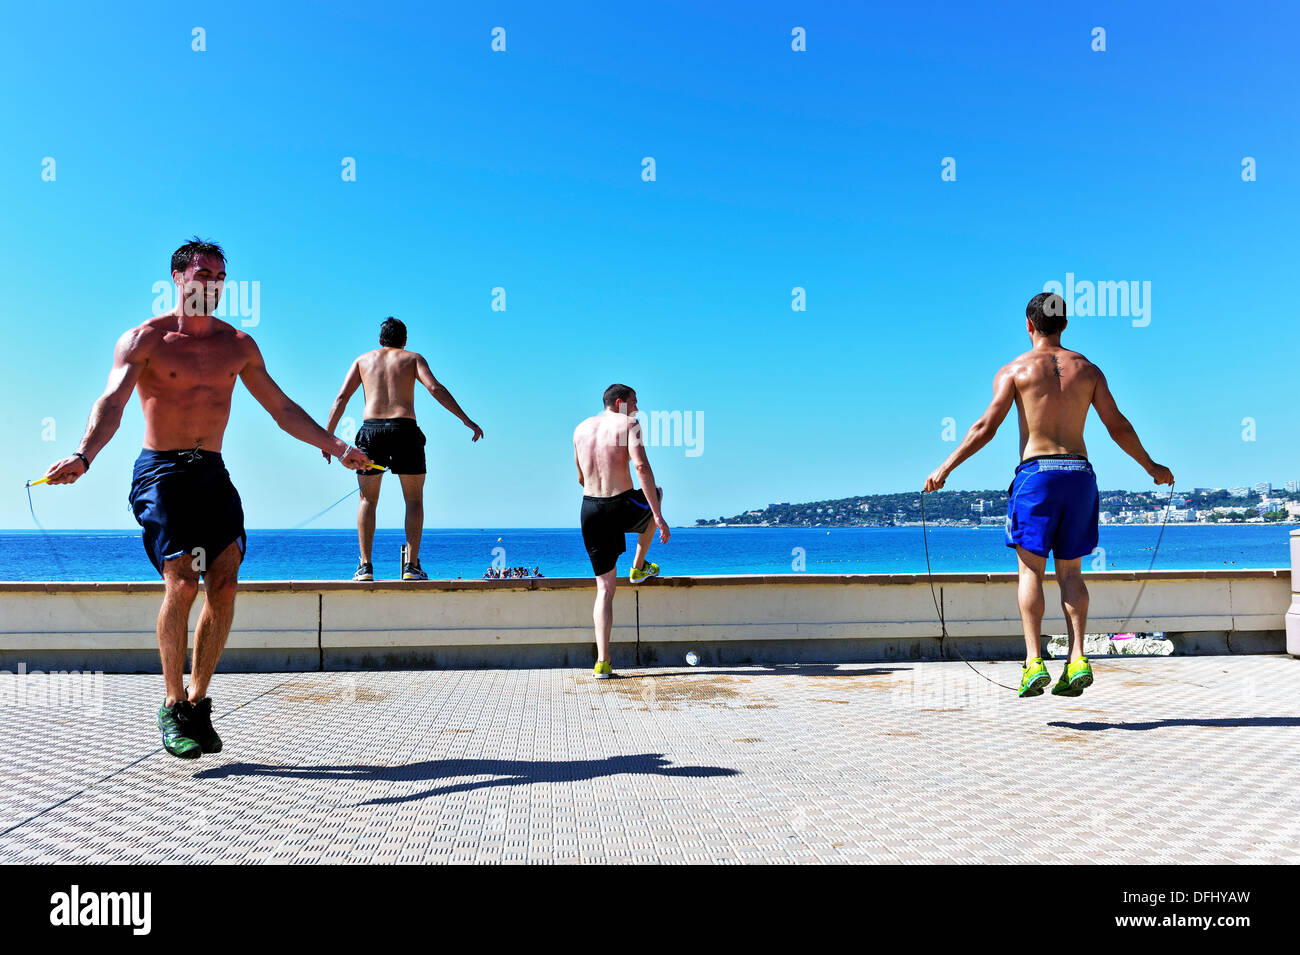 Europe, France, Alpes-Maritimes, Menton. Young athletes men making the jump rope. - Stock Image